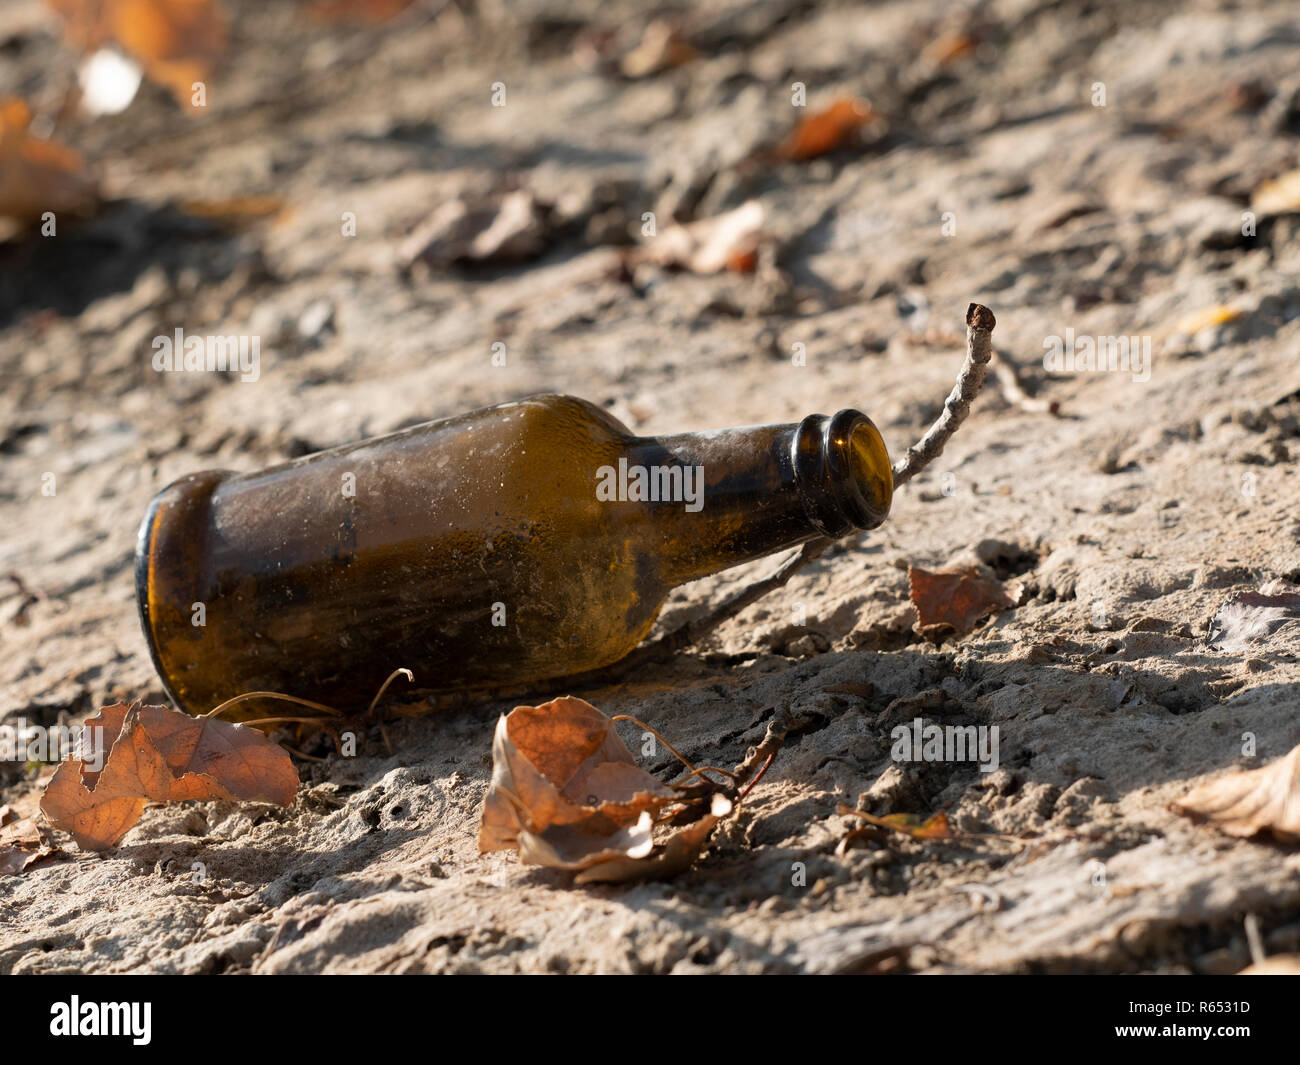 An old brown glass beer bottle discarded on the banks of dried up lake with leaves and twigs in late summer - Stock Image